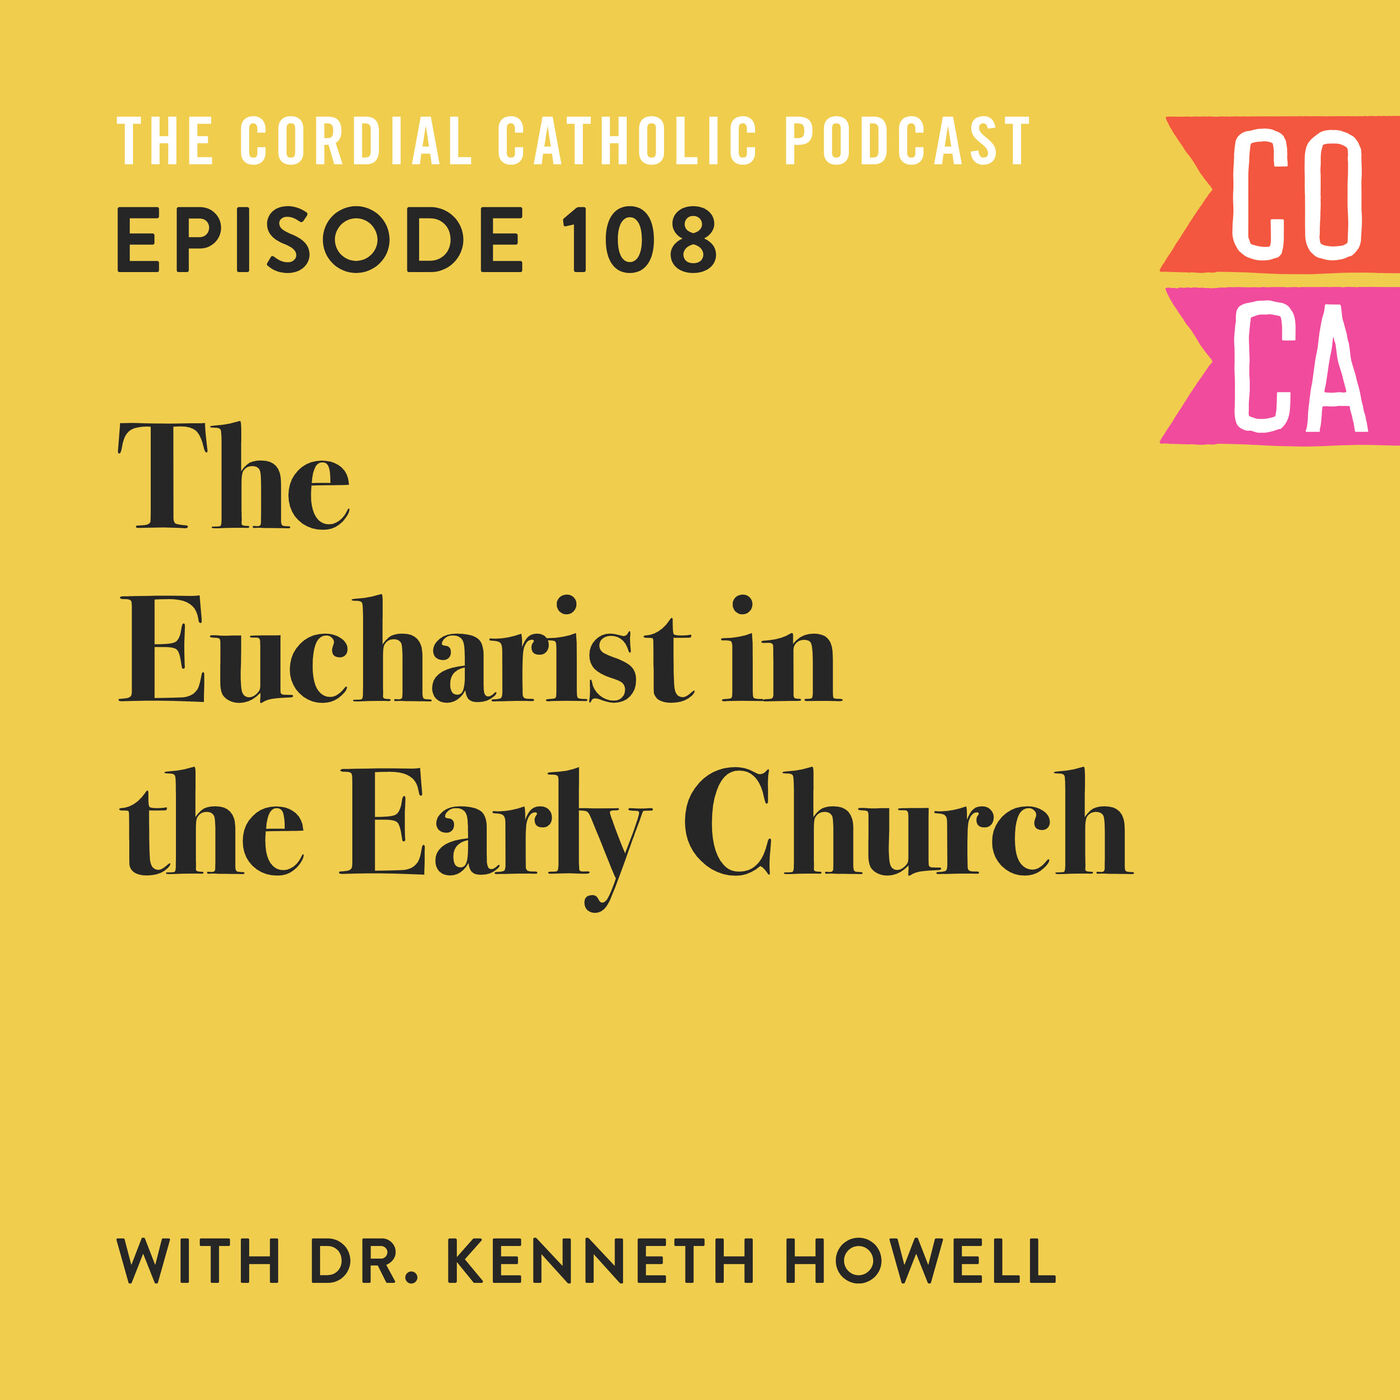 108: The Eucharist in the Early Church (w/ Dr. Kenneth Howell)